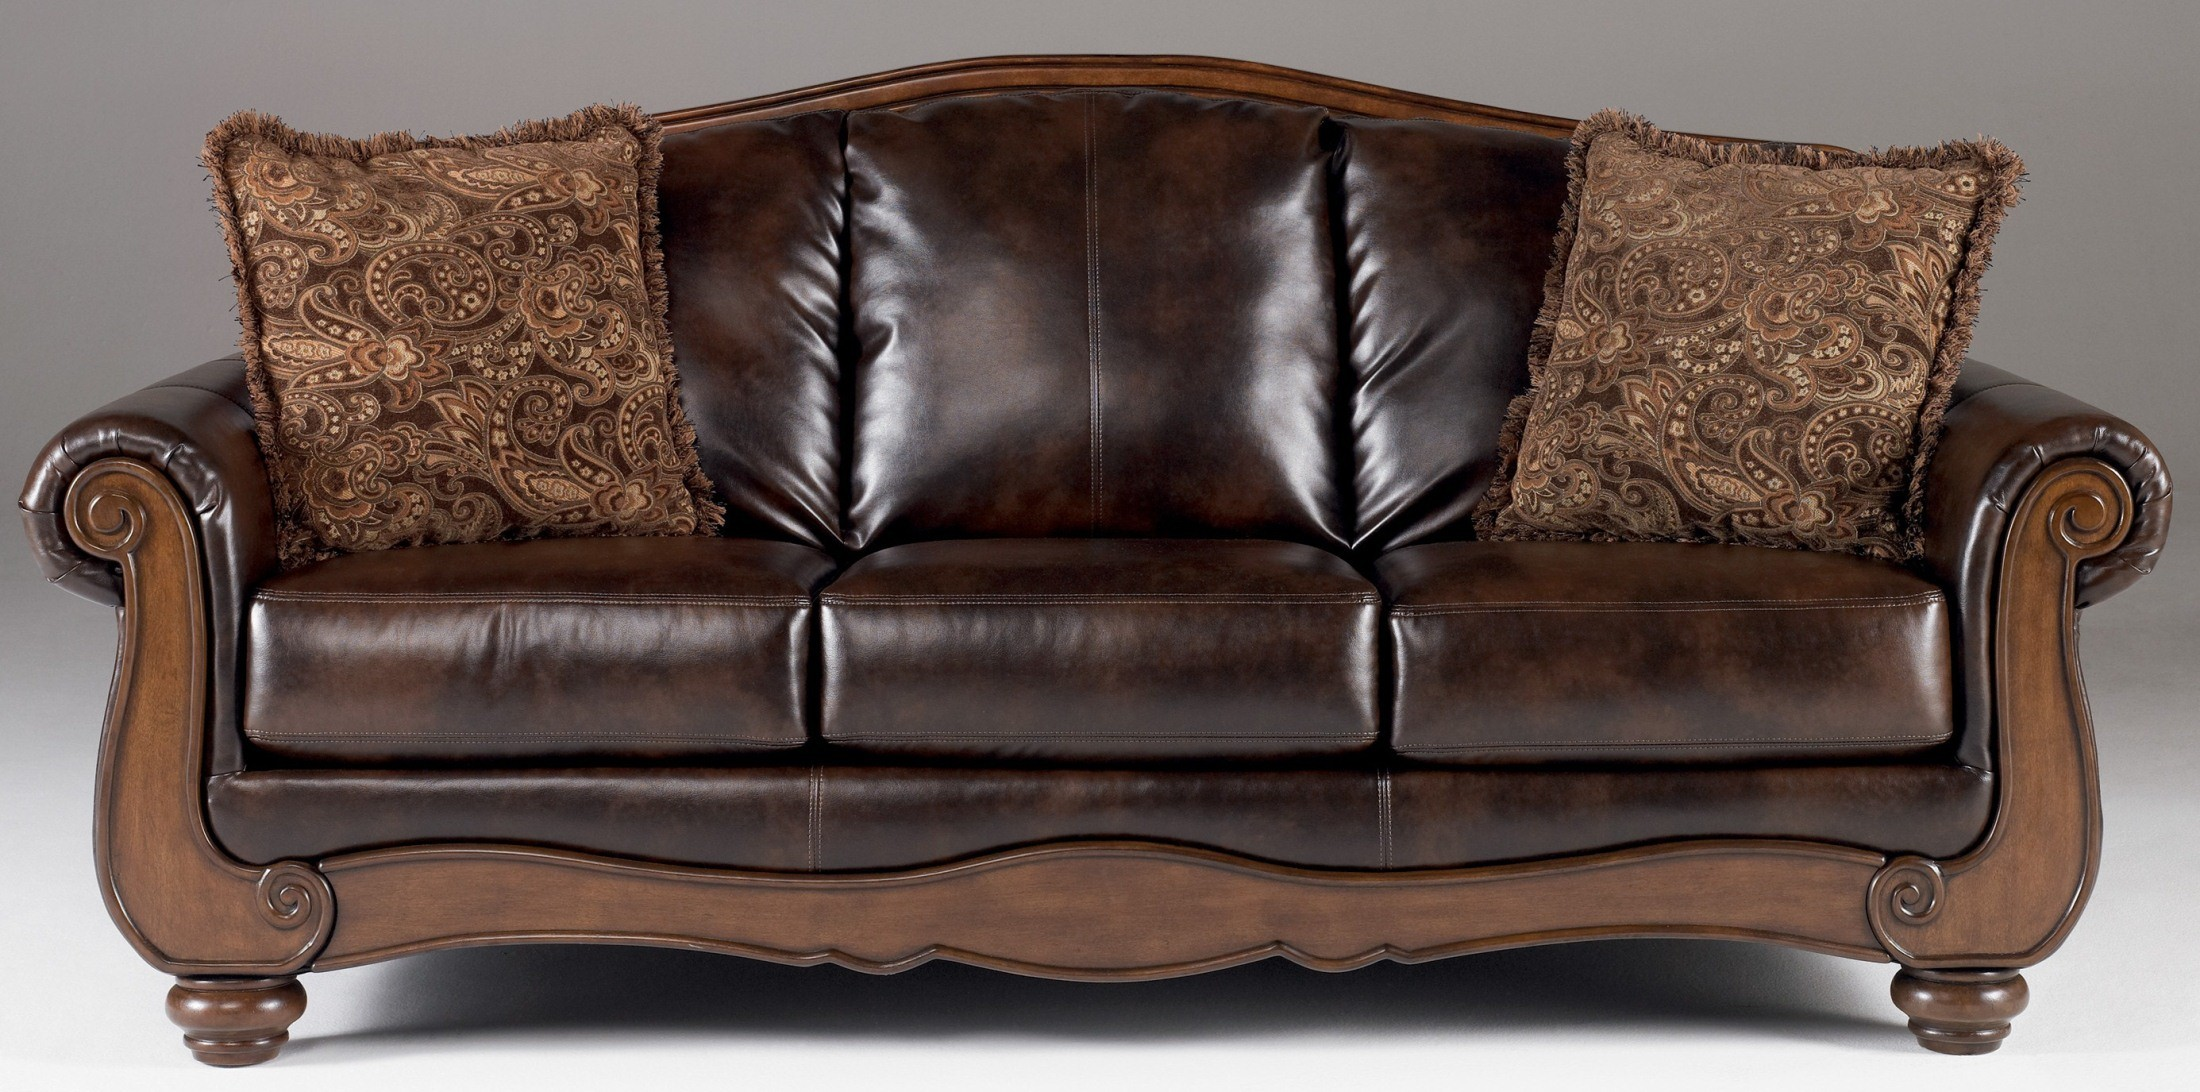 Barcelona Antique Sofa From Ashley 5530038 Coleman Furniture